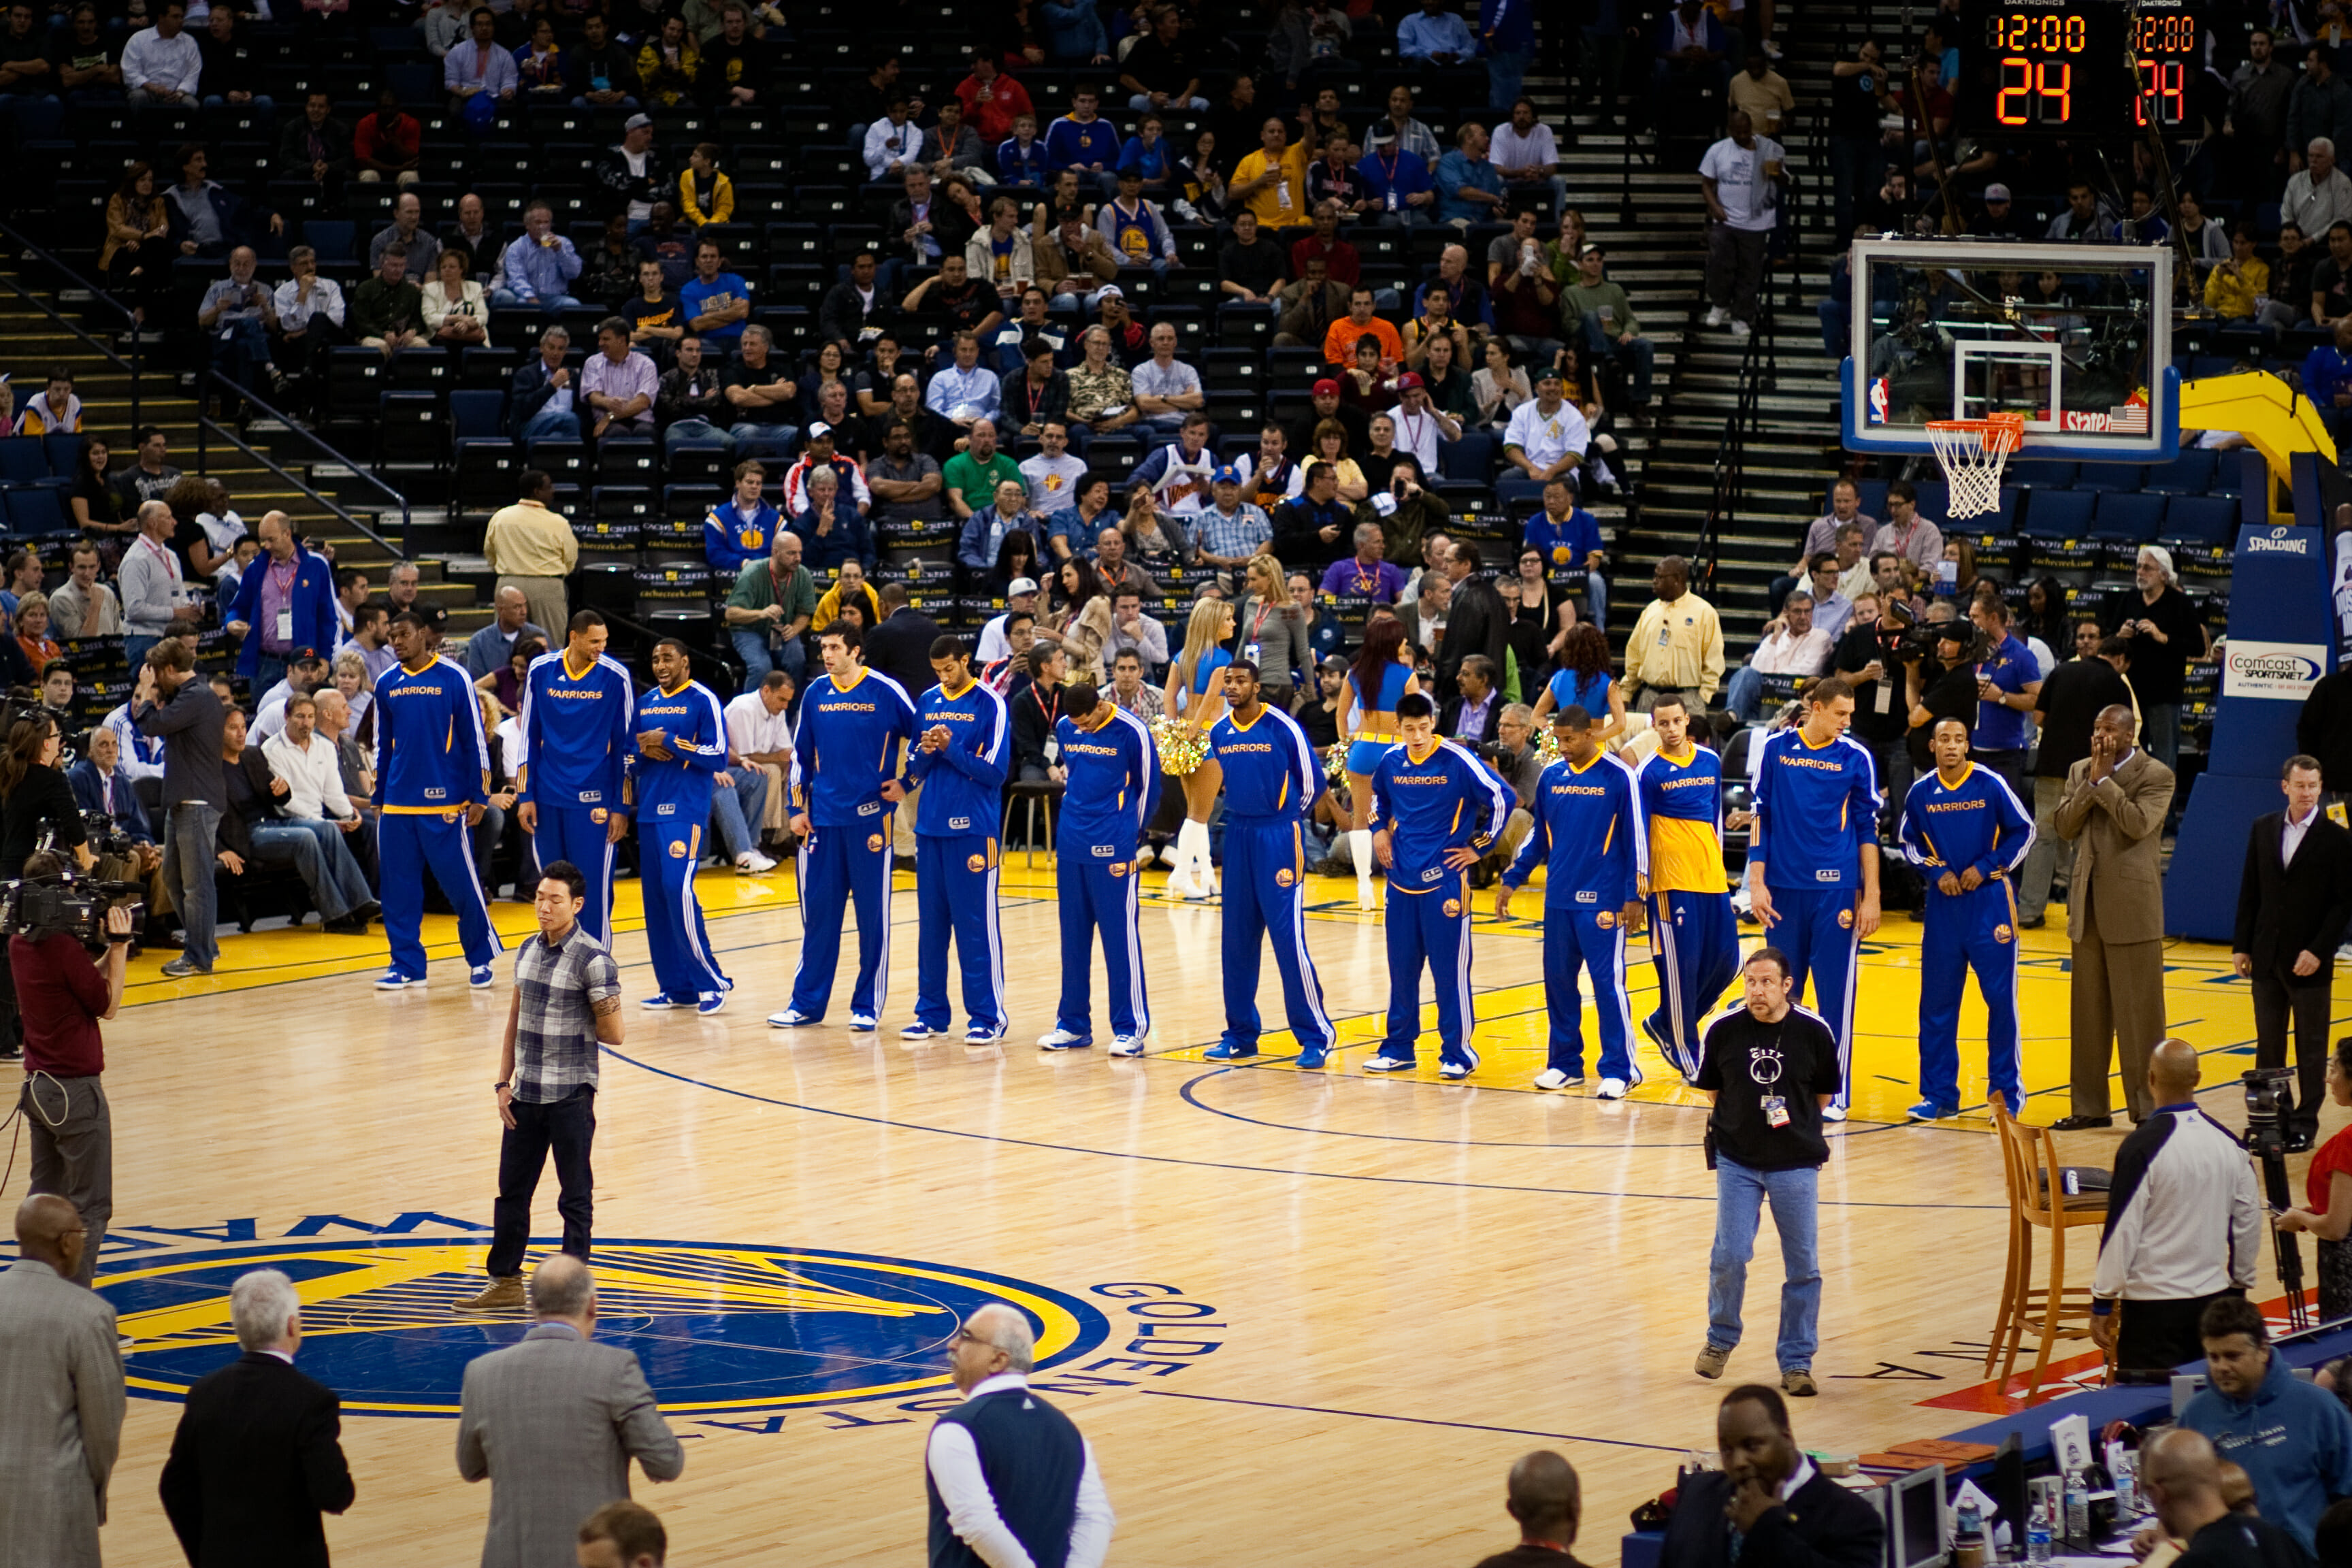 FAKE NEWS: Media Reports that Warriors Are Boycotting White House – COMPLETE CRAP